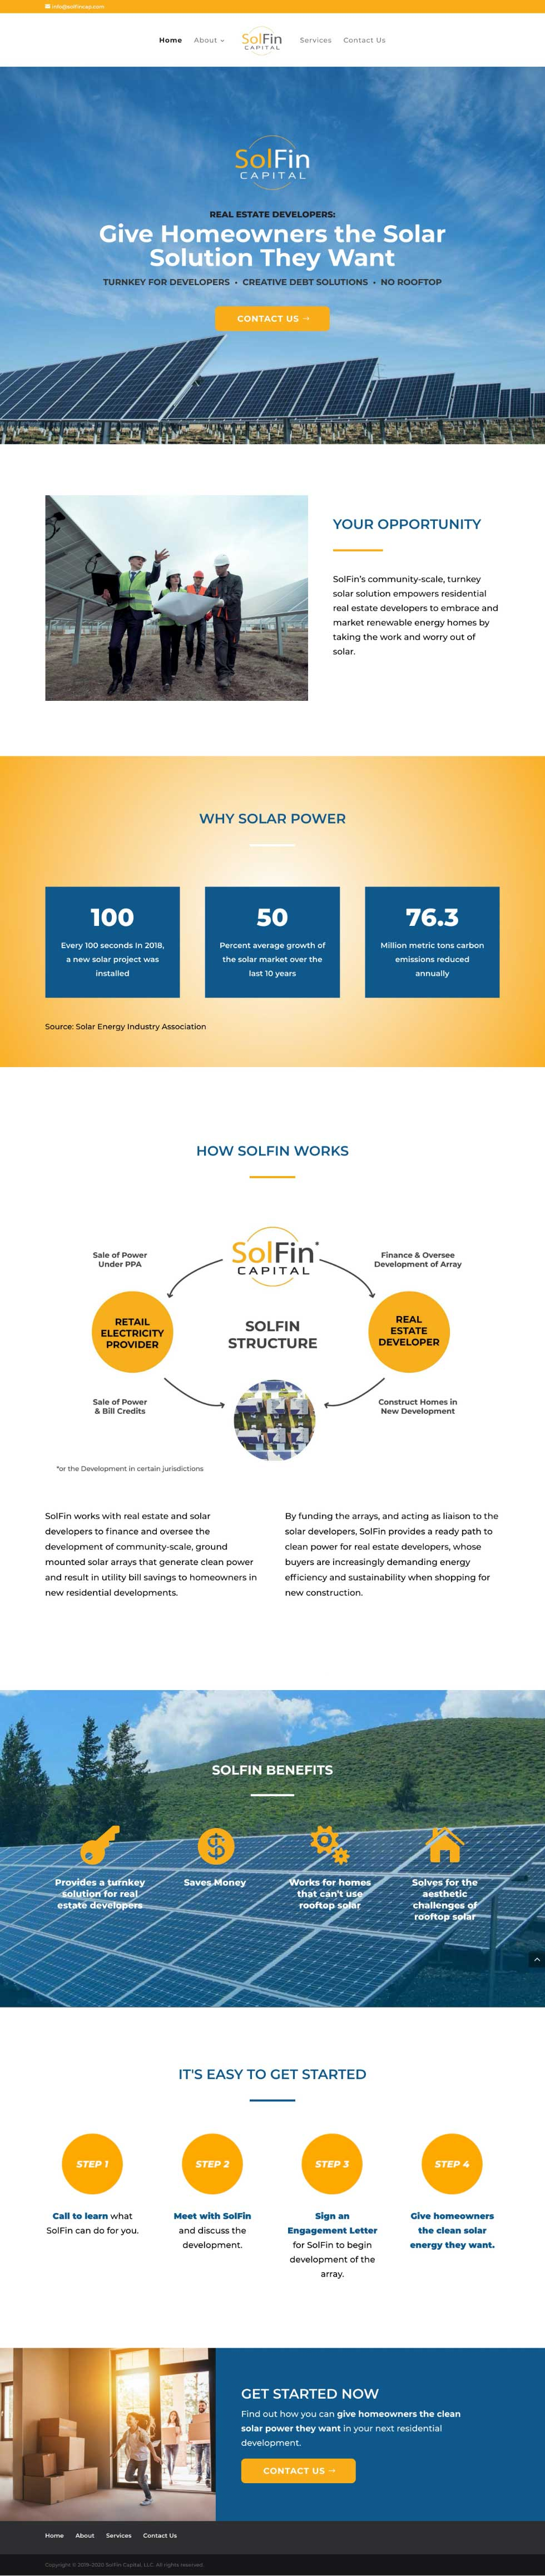 SolFin-Capital-homepage